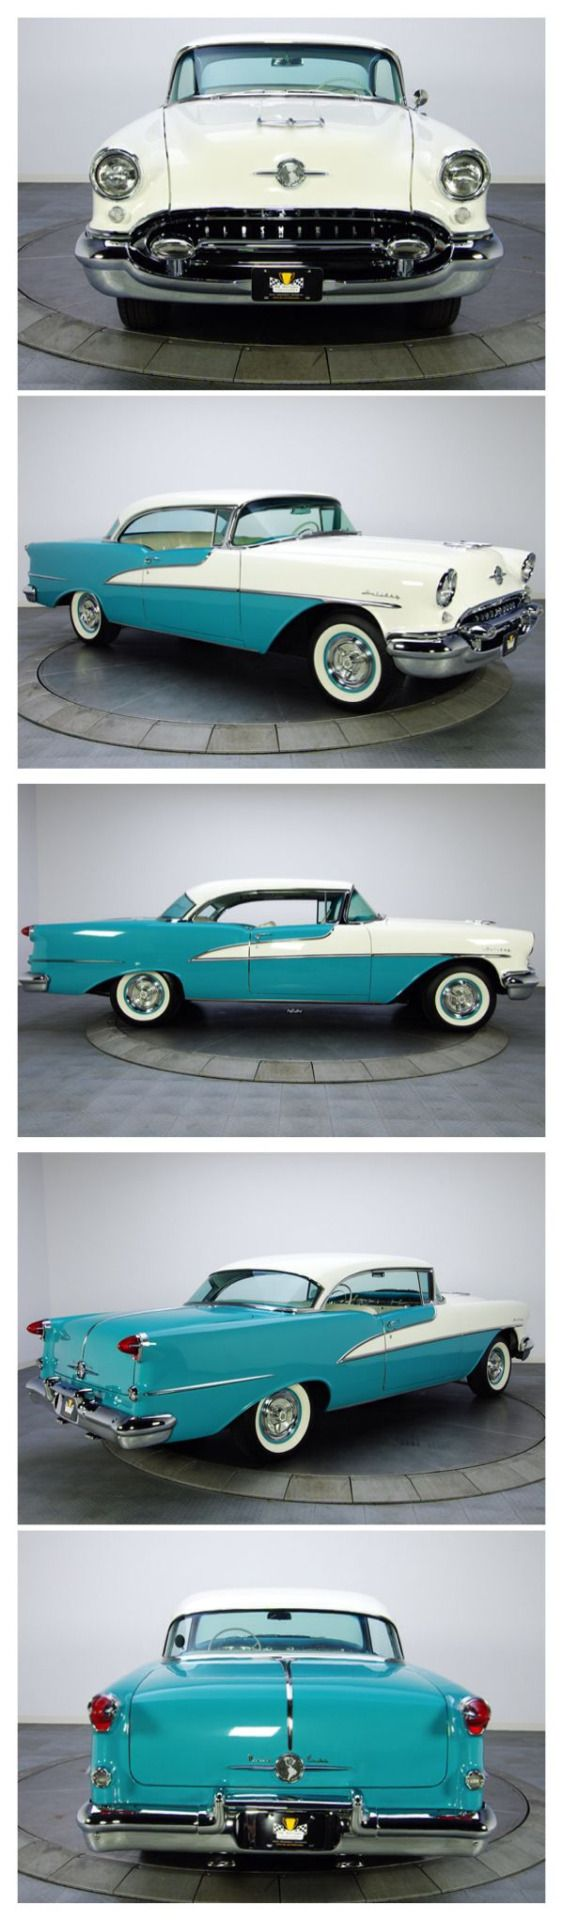 1955 Oldsmobile 98 Holiday Coupe.